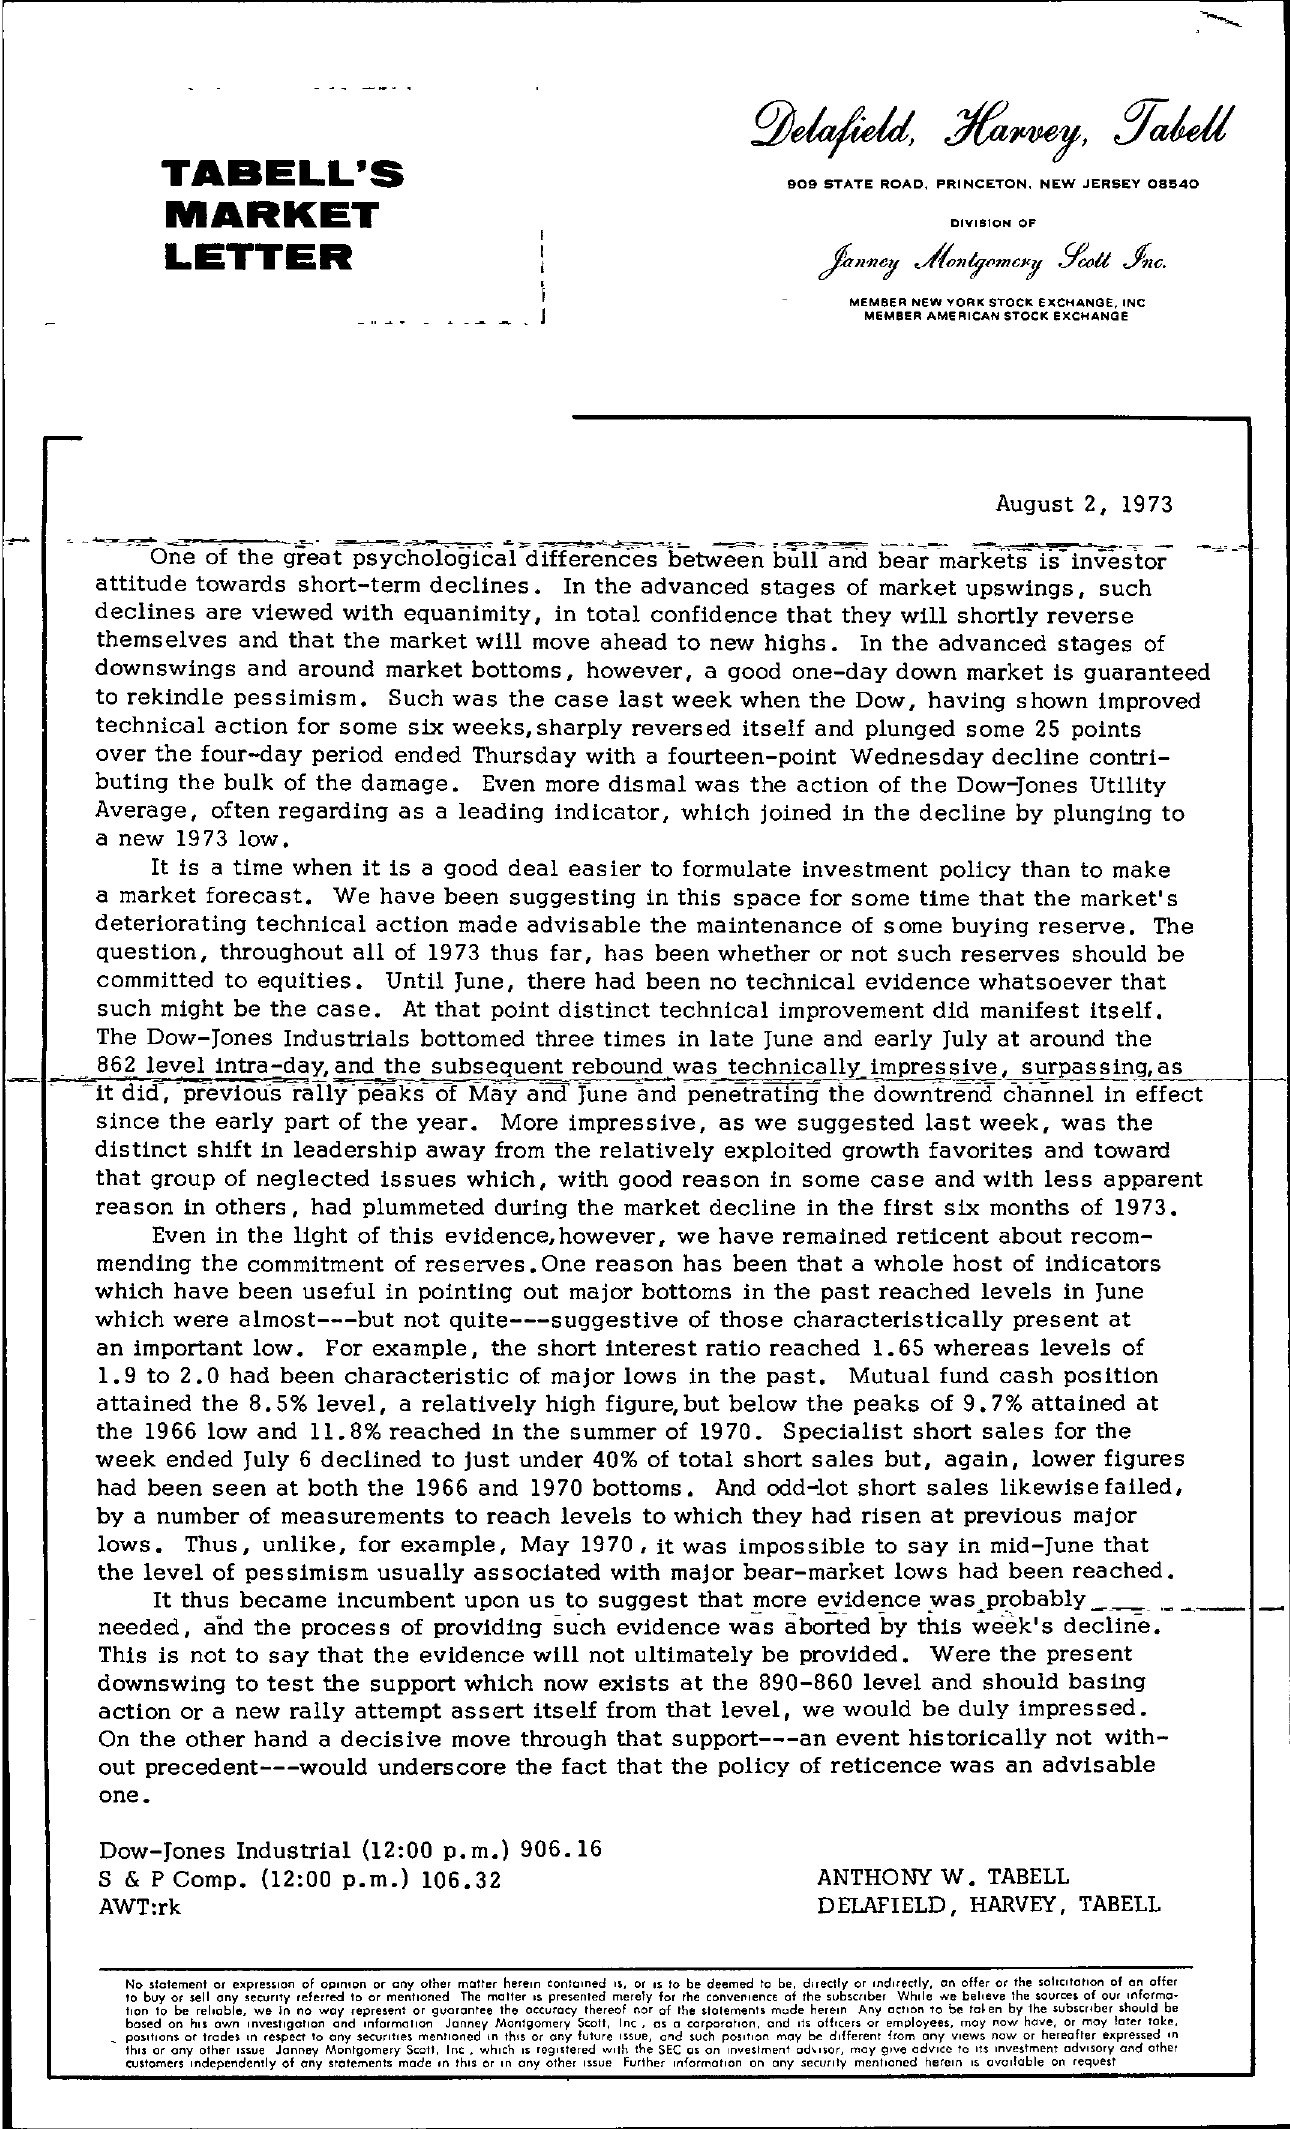 Tabell's Market Letter - August 02, 1973